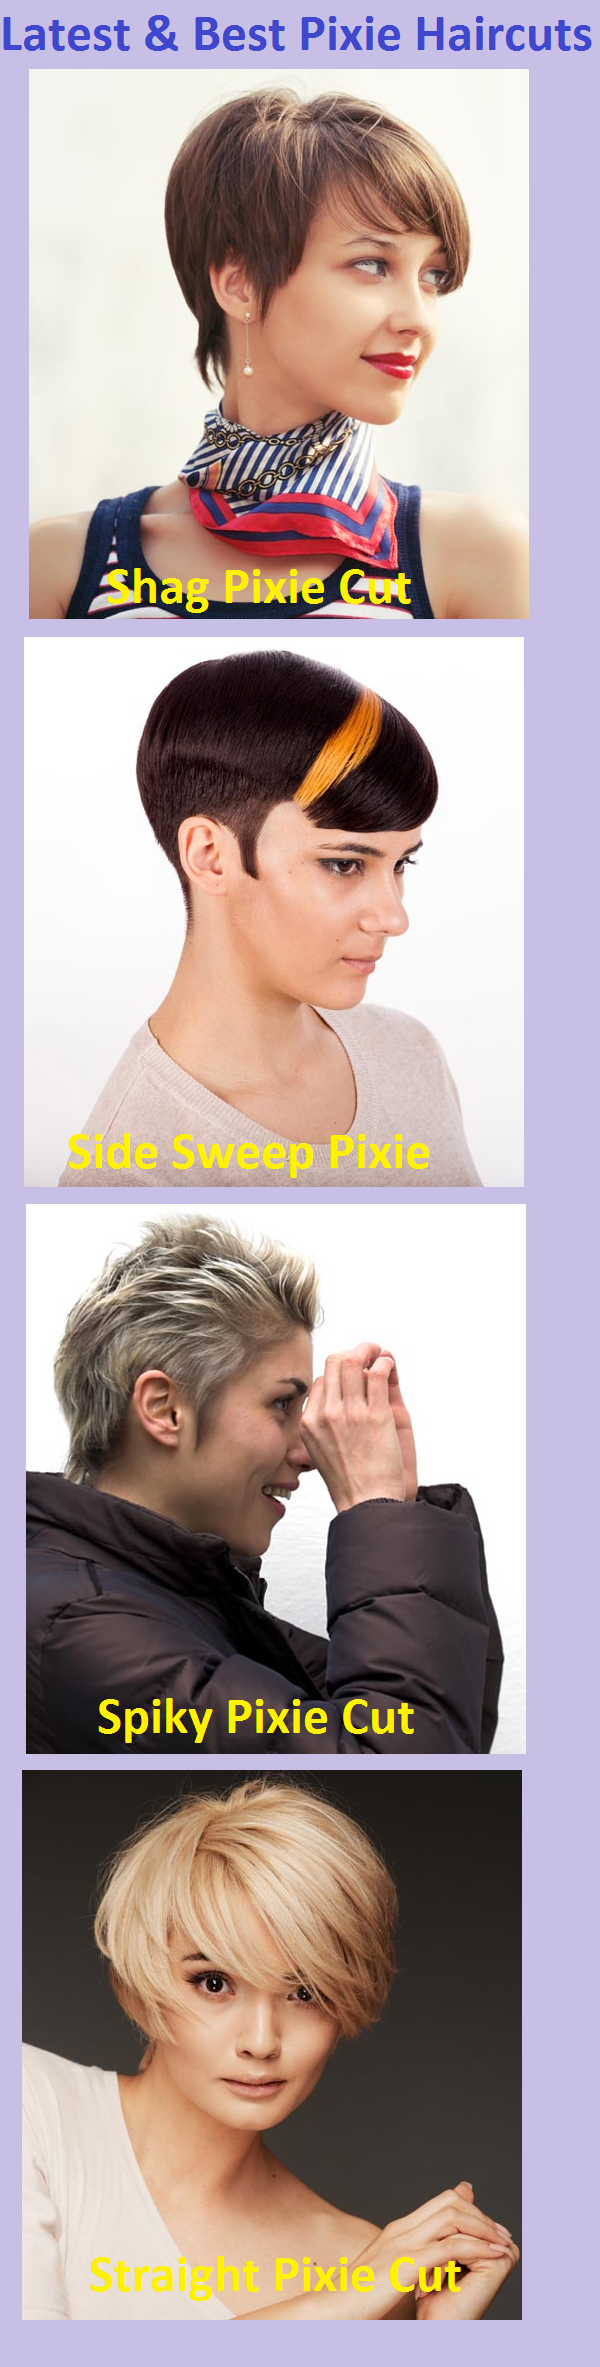 latest & best pixie haircuts